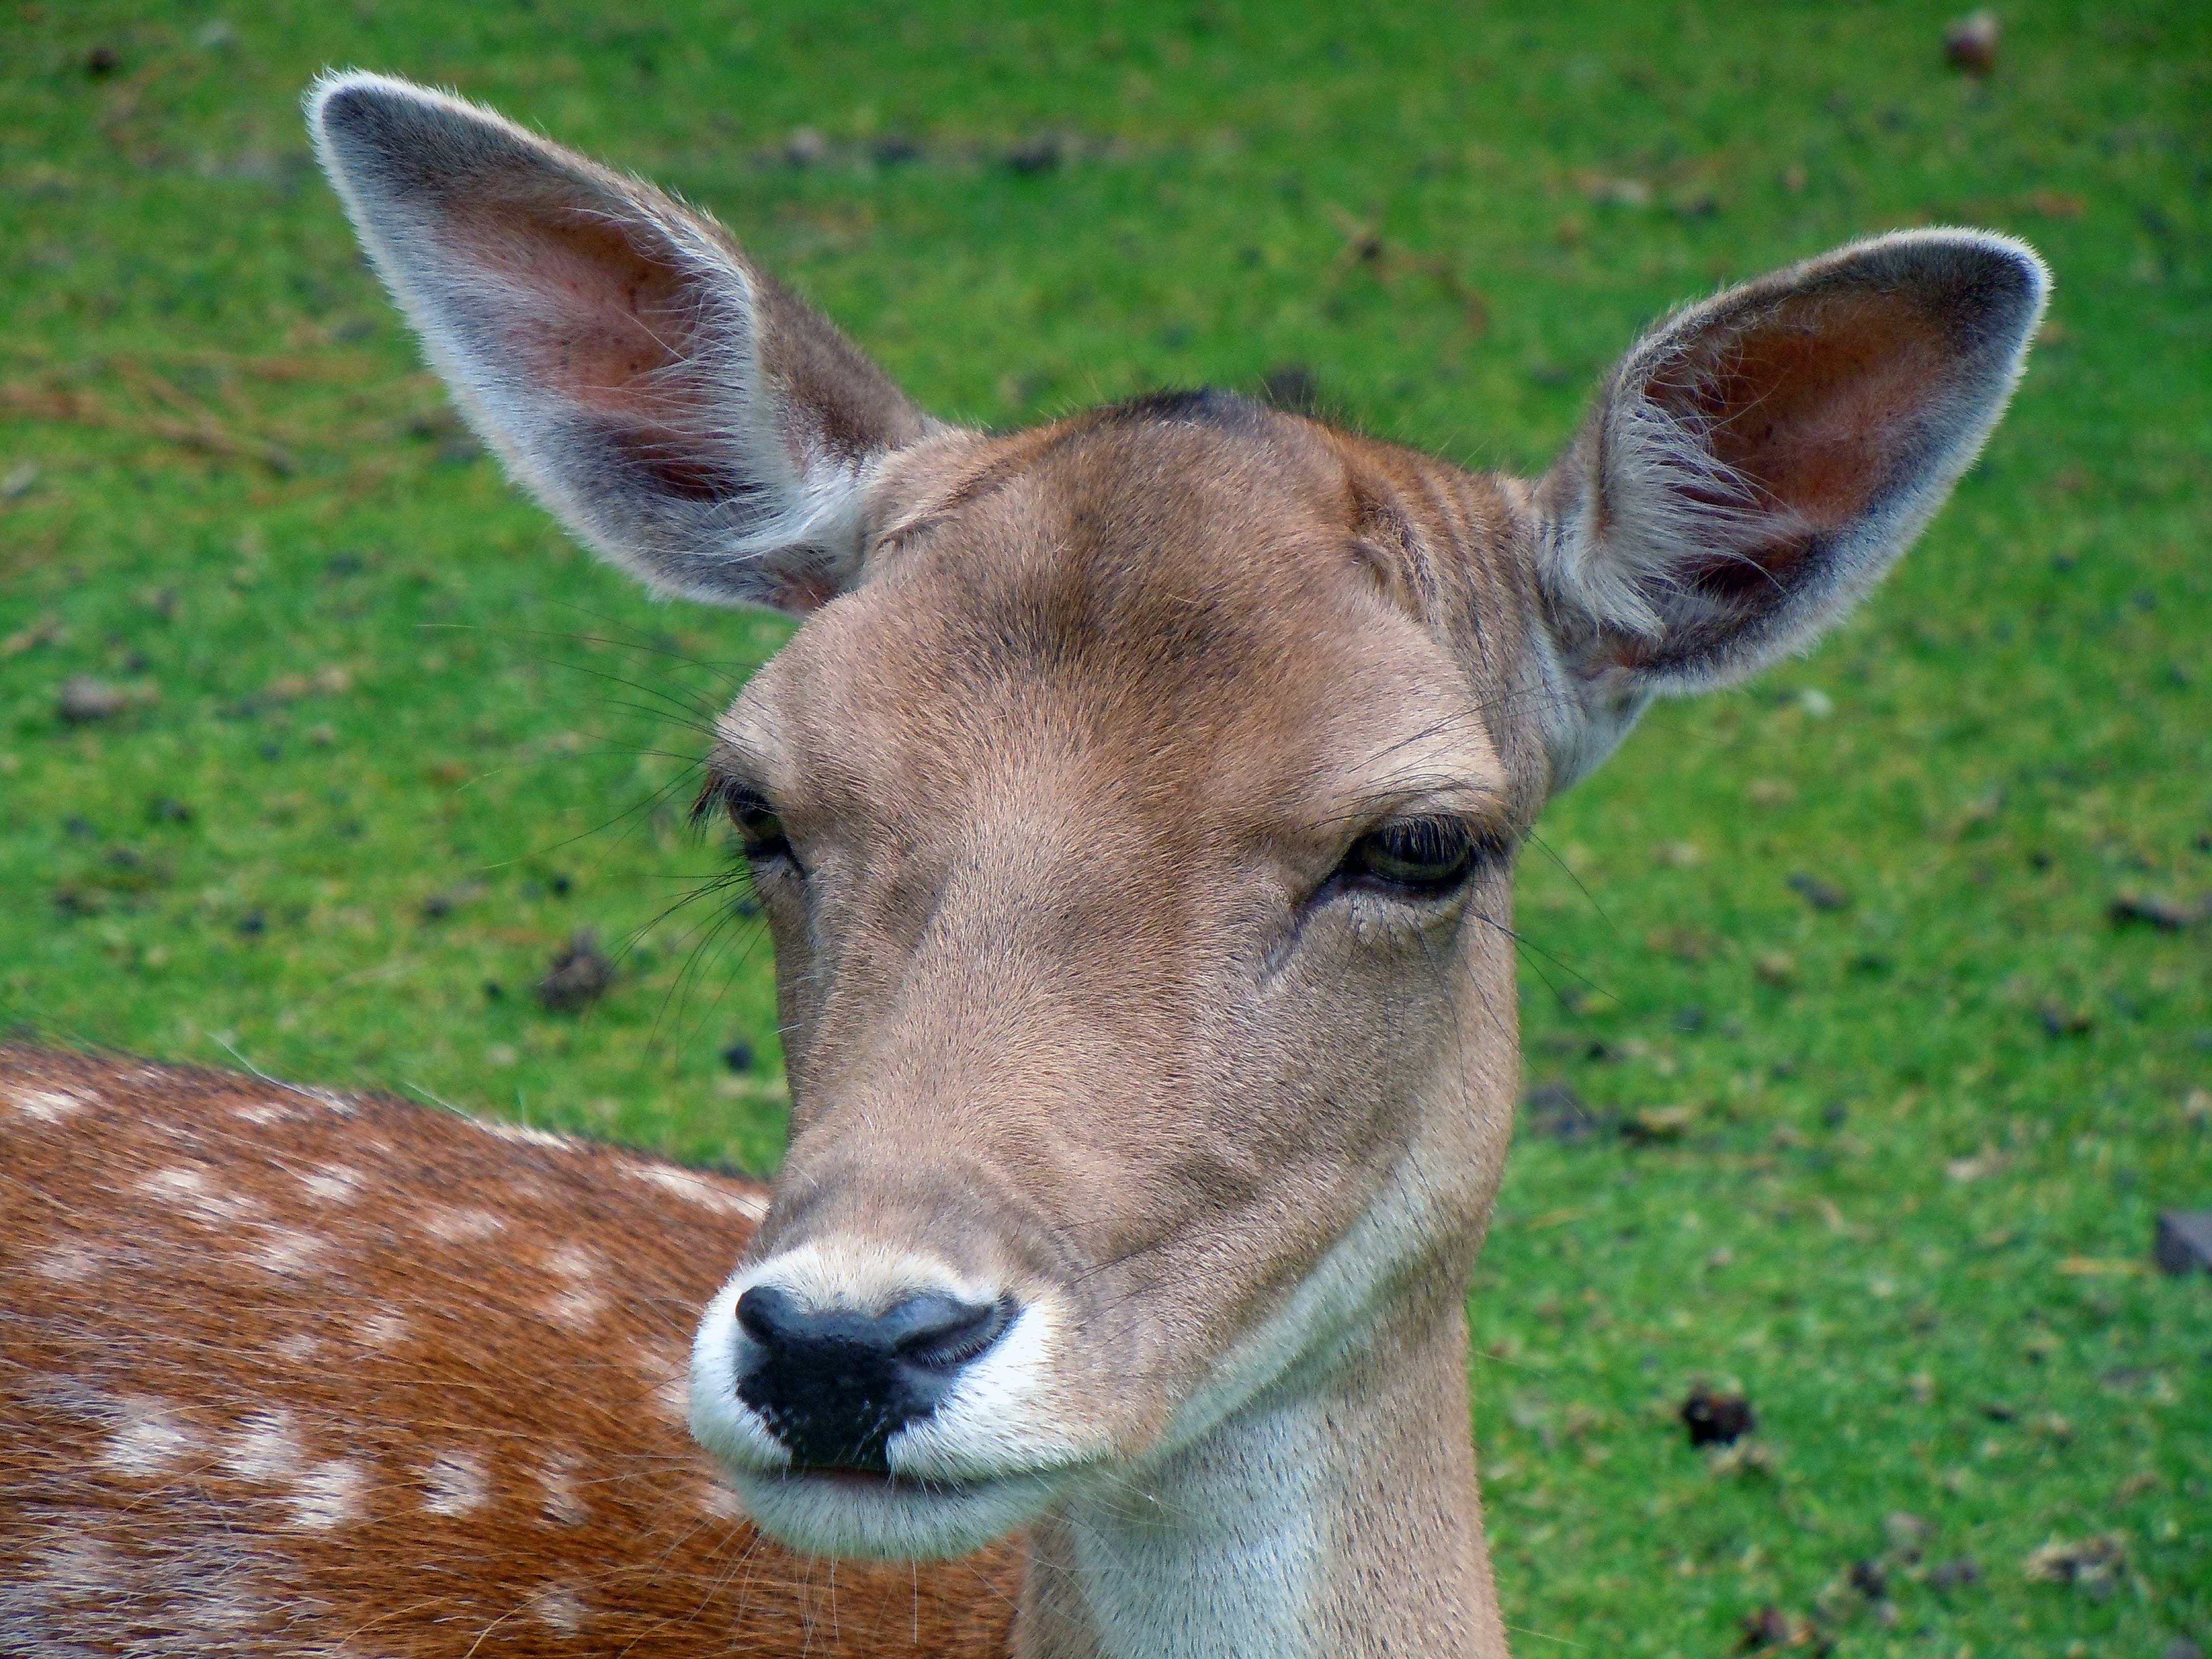 Brown Deer on Grass Field